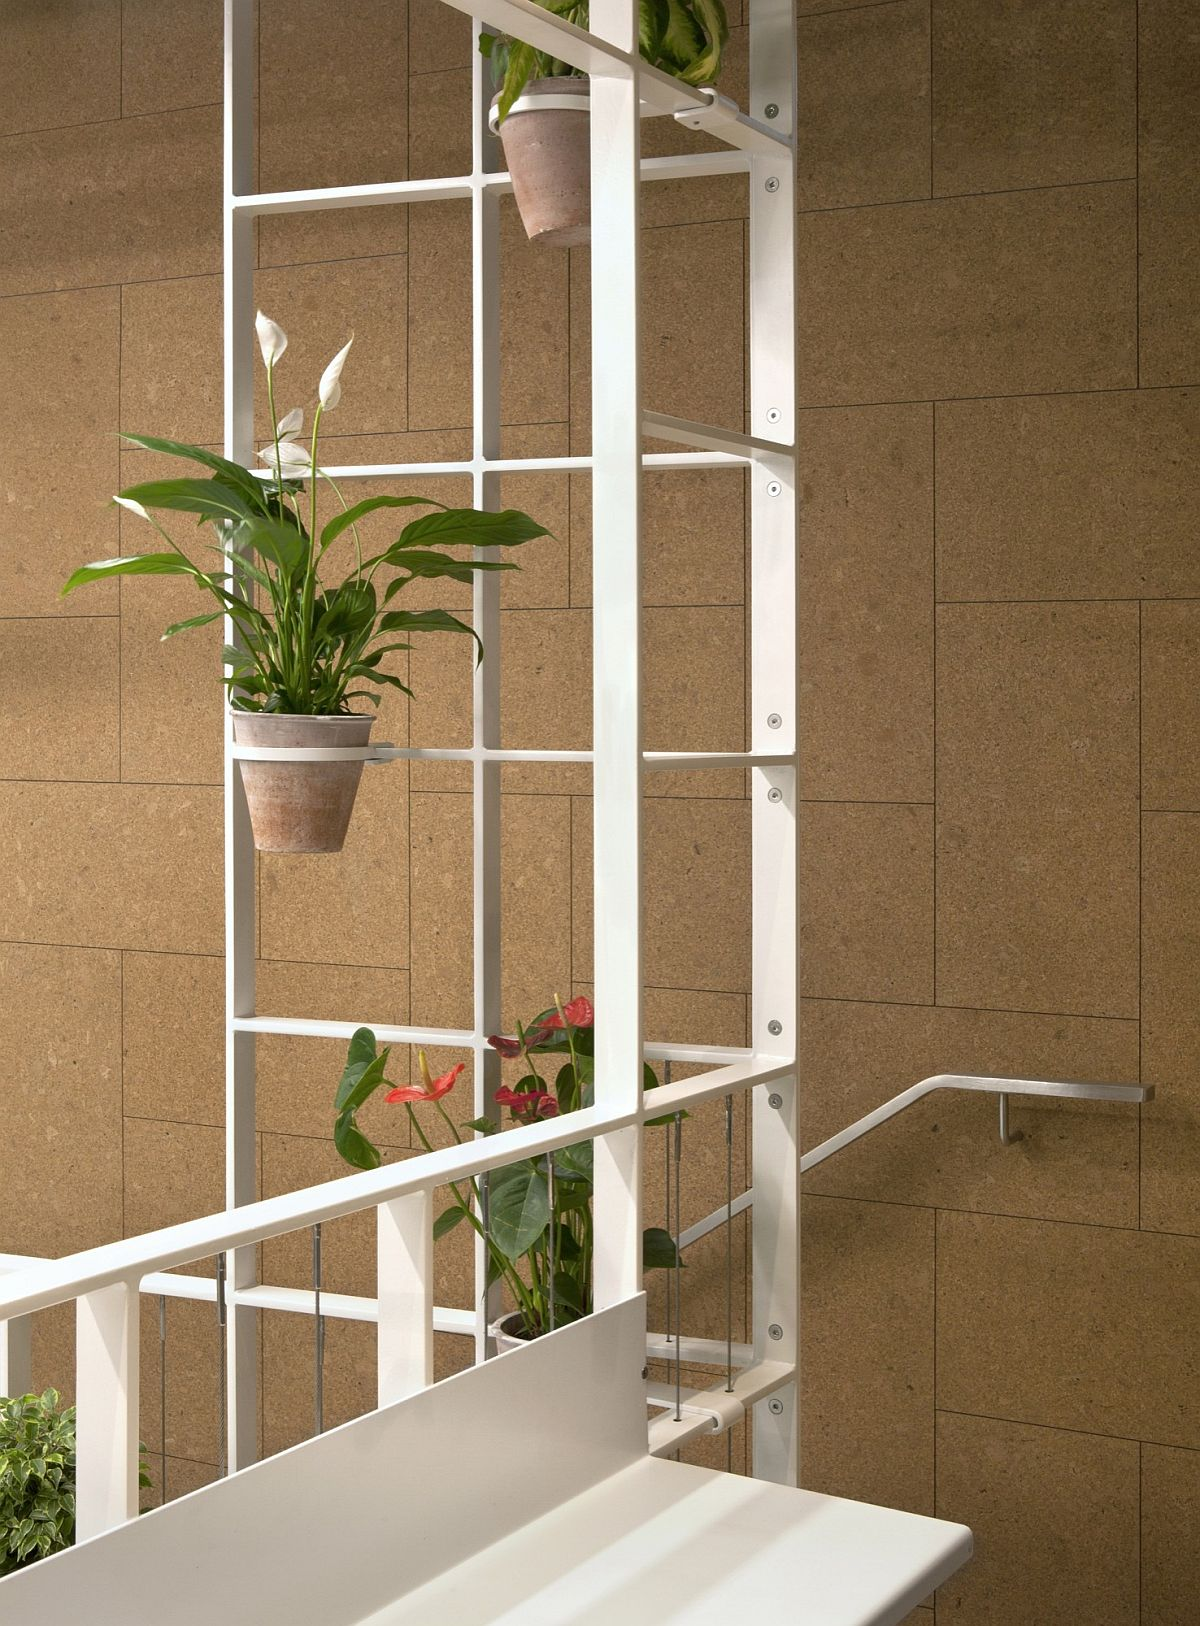 Smart-display-of-greenery-adds-pep-to-the-interior